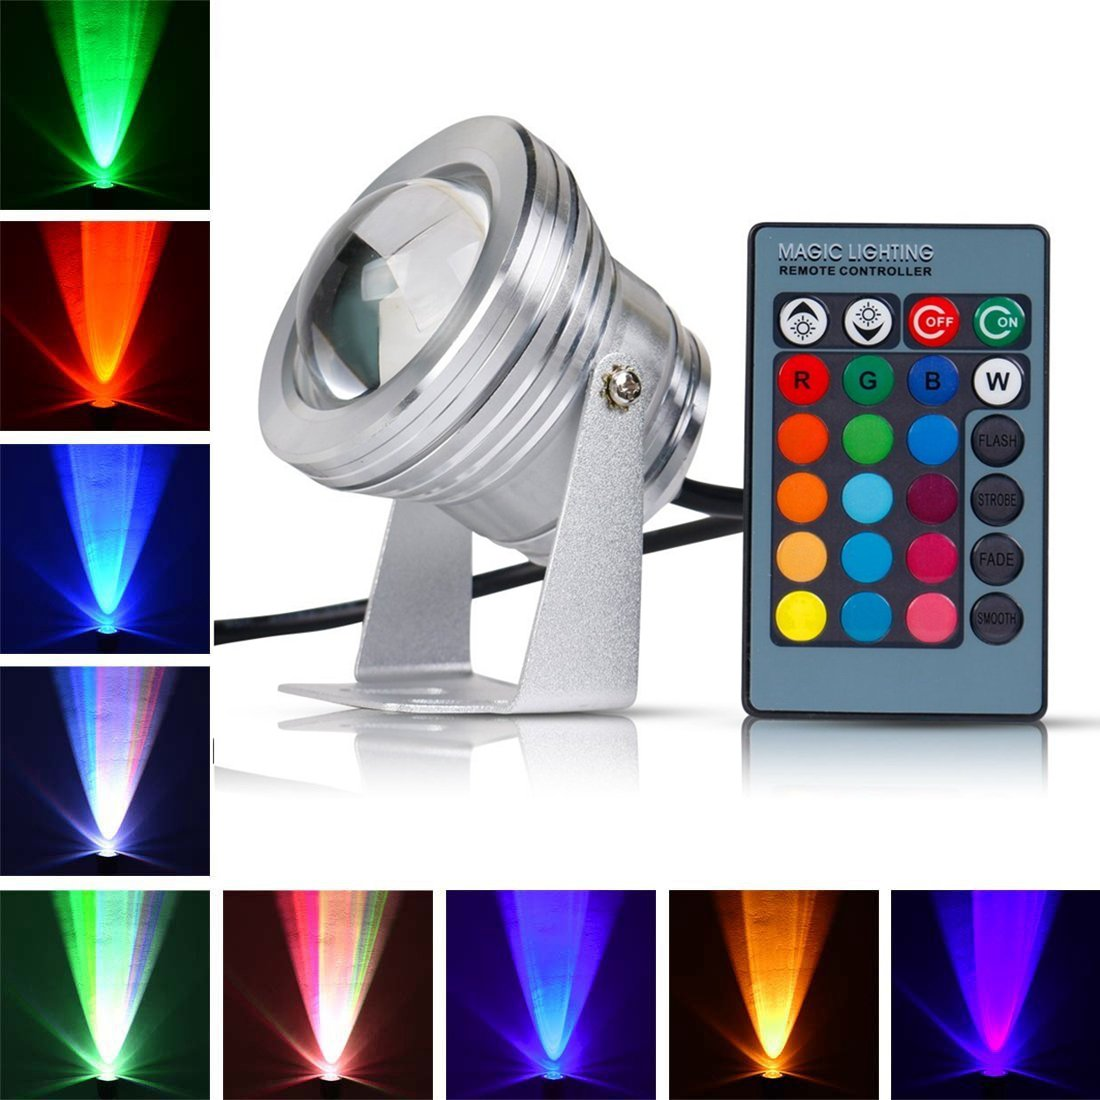 Remote Control 10w 12v Water resistant RGB Underwater Light Lamp for Landscape Fountain Pond Lighting Outdoor Security Color Changing LED Light with 24Key Remote Control (Silver)